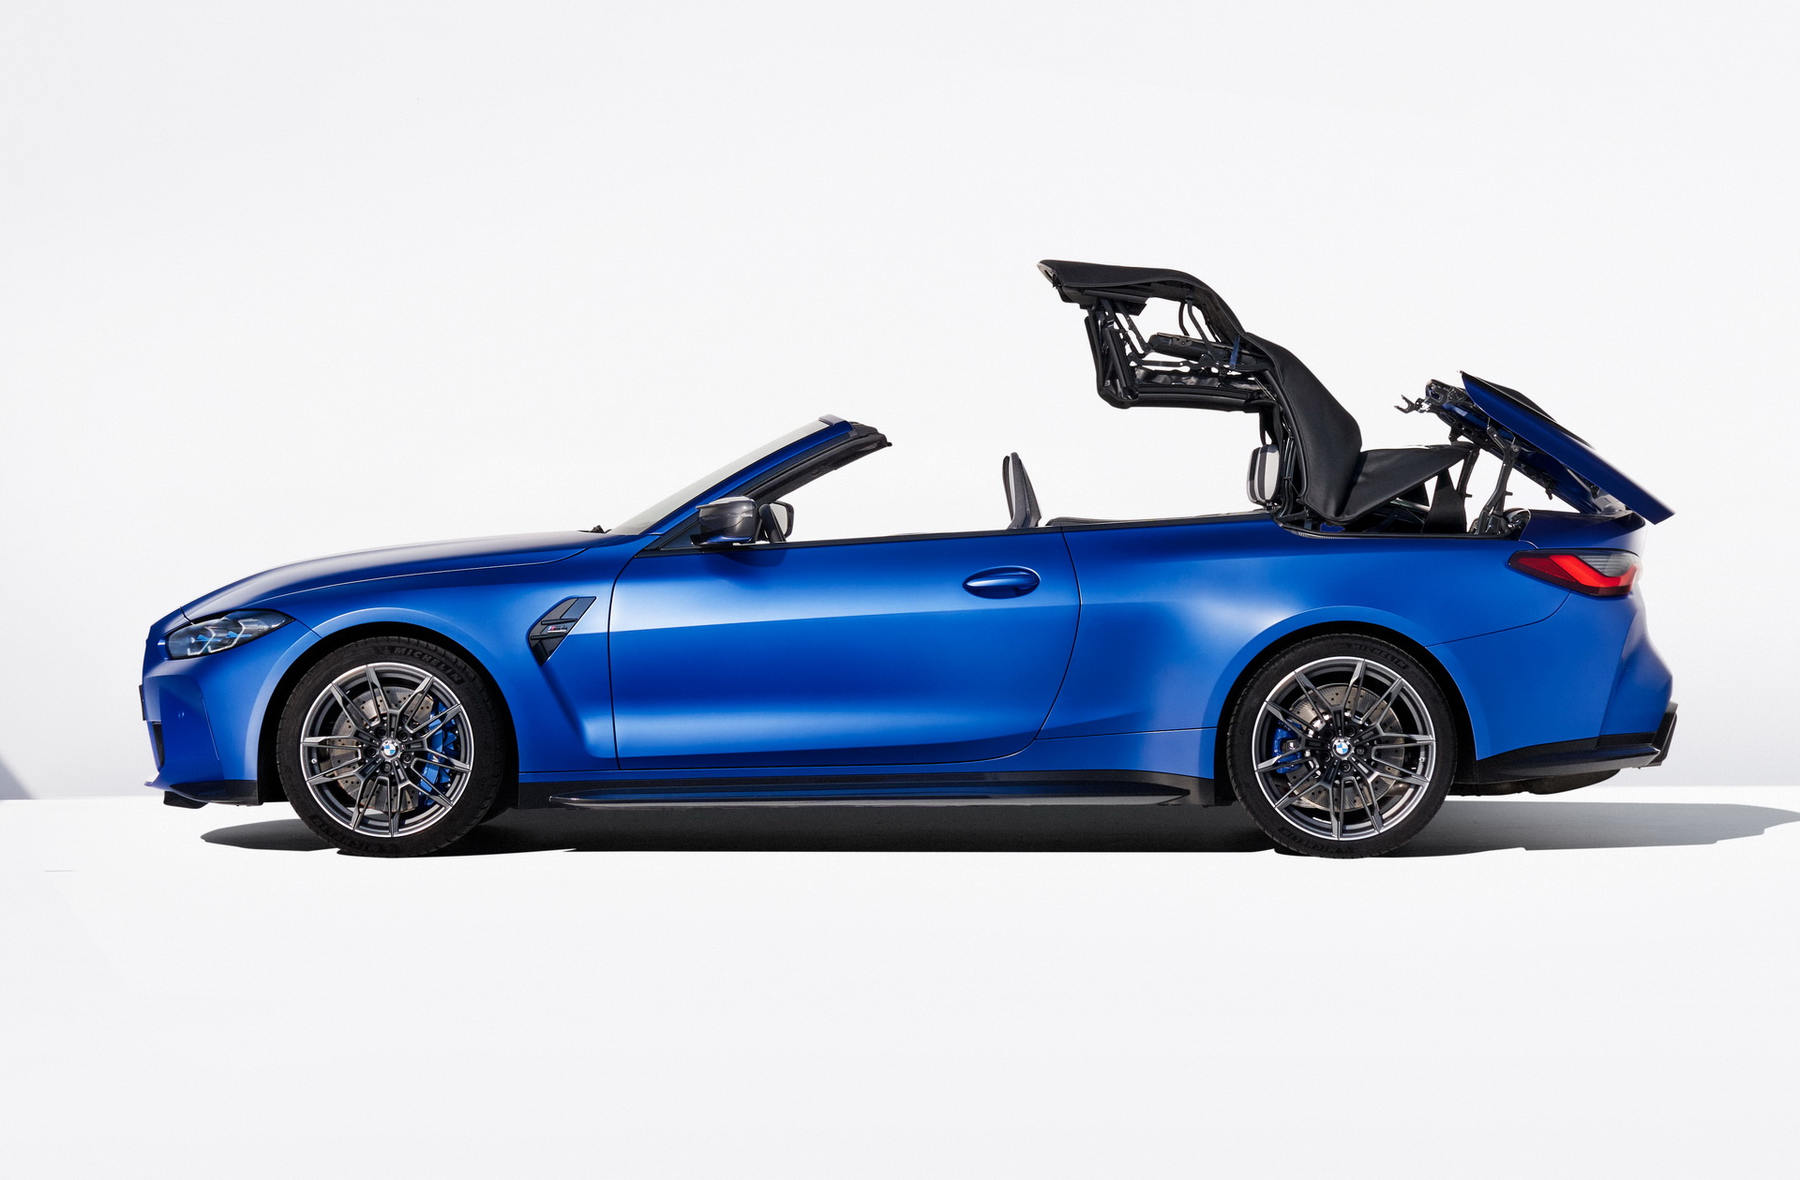 BMW-M4-Competition-Convertible-xdrive_05.jpg